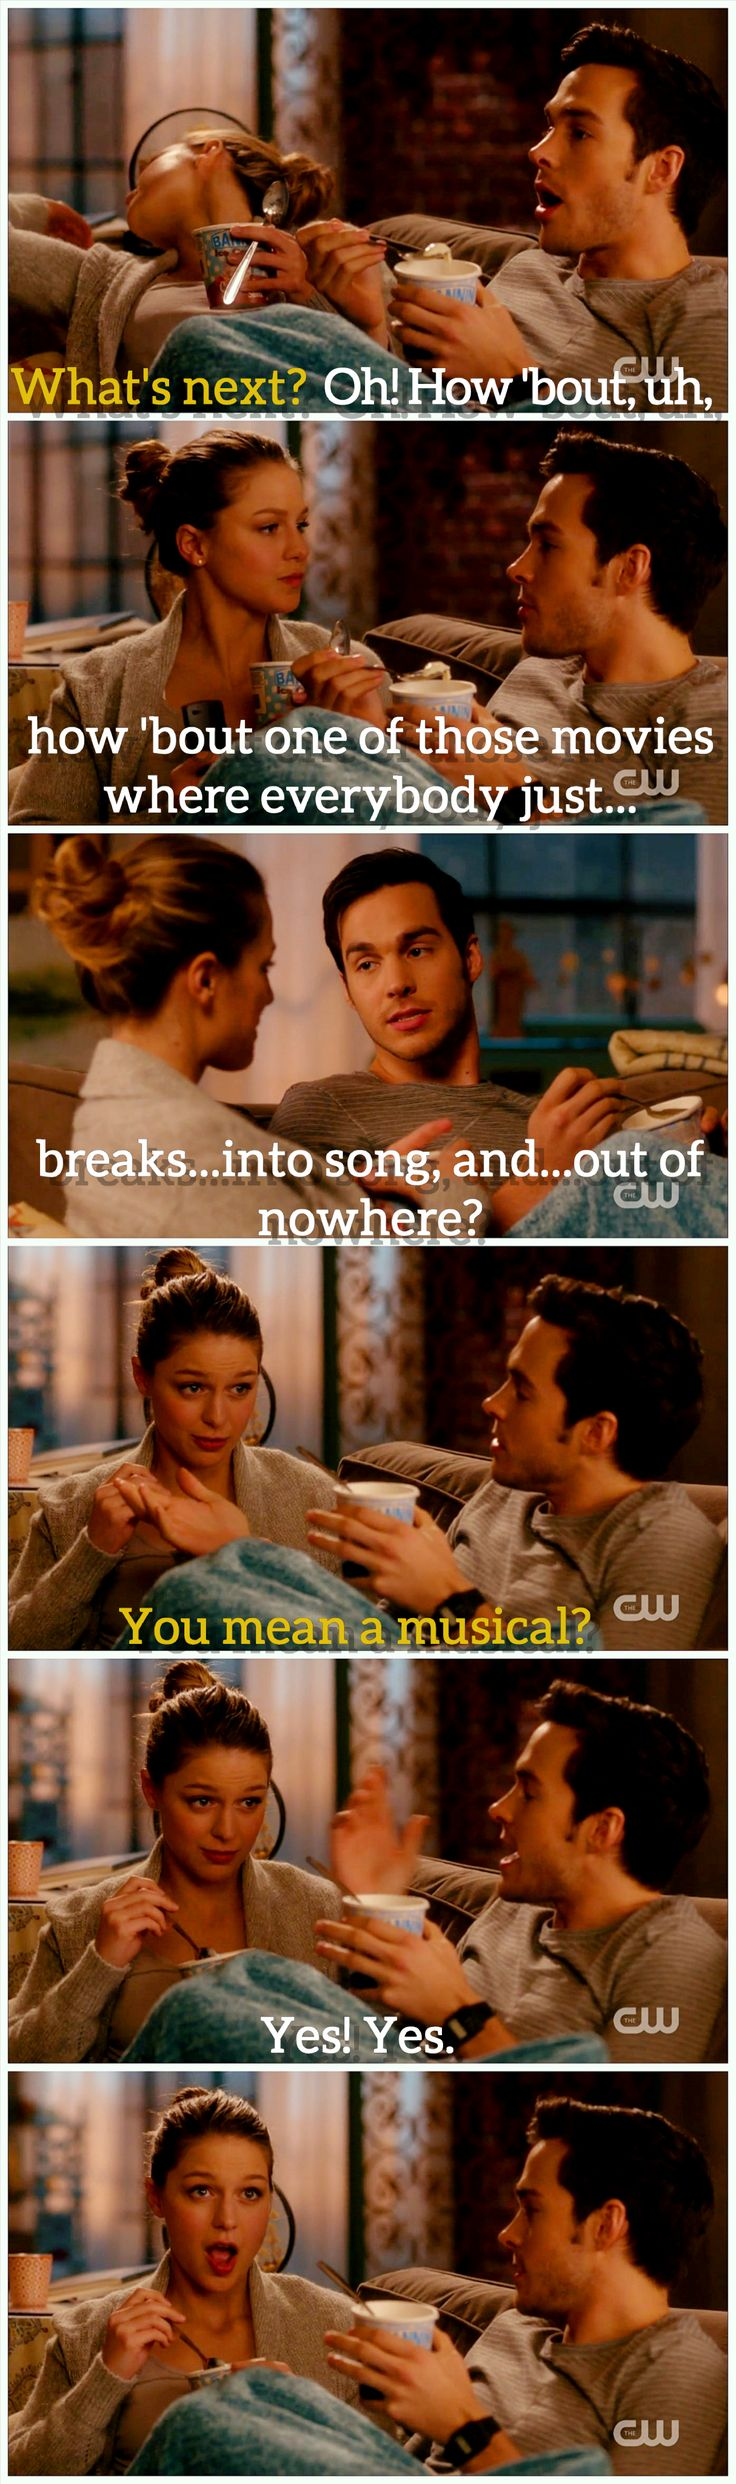 Ok. Where do I find a Mon-El? (Besides Earth 38/Daxam, I mean.) The boy is willing to do date night on the couch with ice cream, and watch [classic] musicals. Kara has the appropriate response. ;D (Also: best description of a musical EVER. Lol.) |TV Shows||CW||#Supergirl edit||Season 2||2x16||Star-Crossed||Kara x Mon-El||#Karamel funny edit||Kara Danvers||Melissa Benoist||Chris Wood||#DCTV|